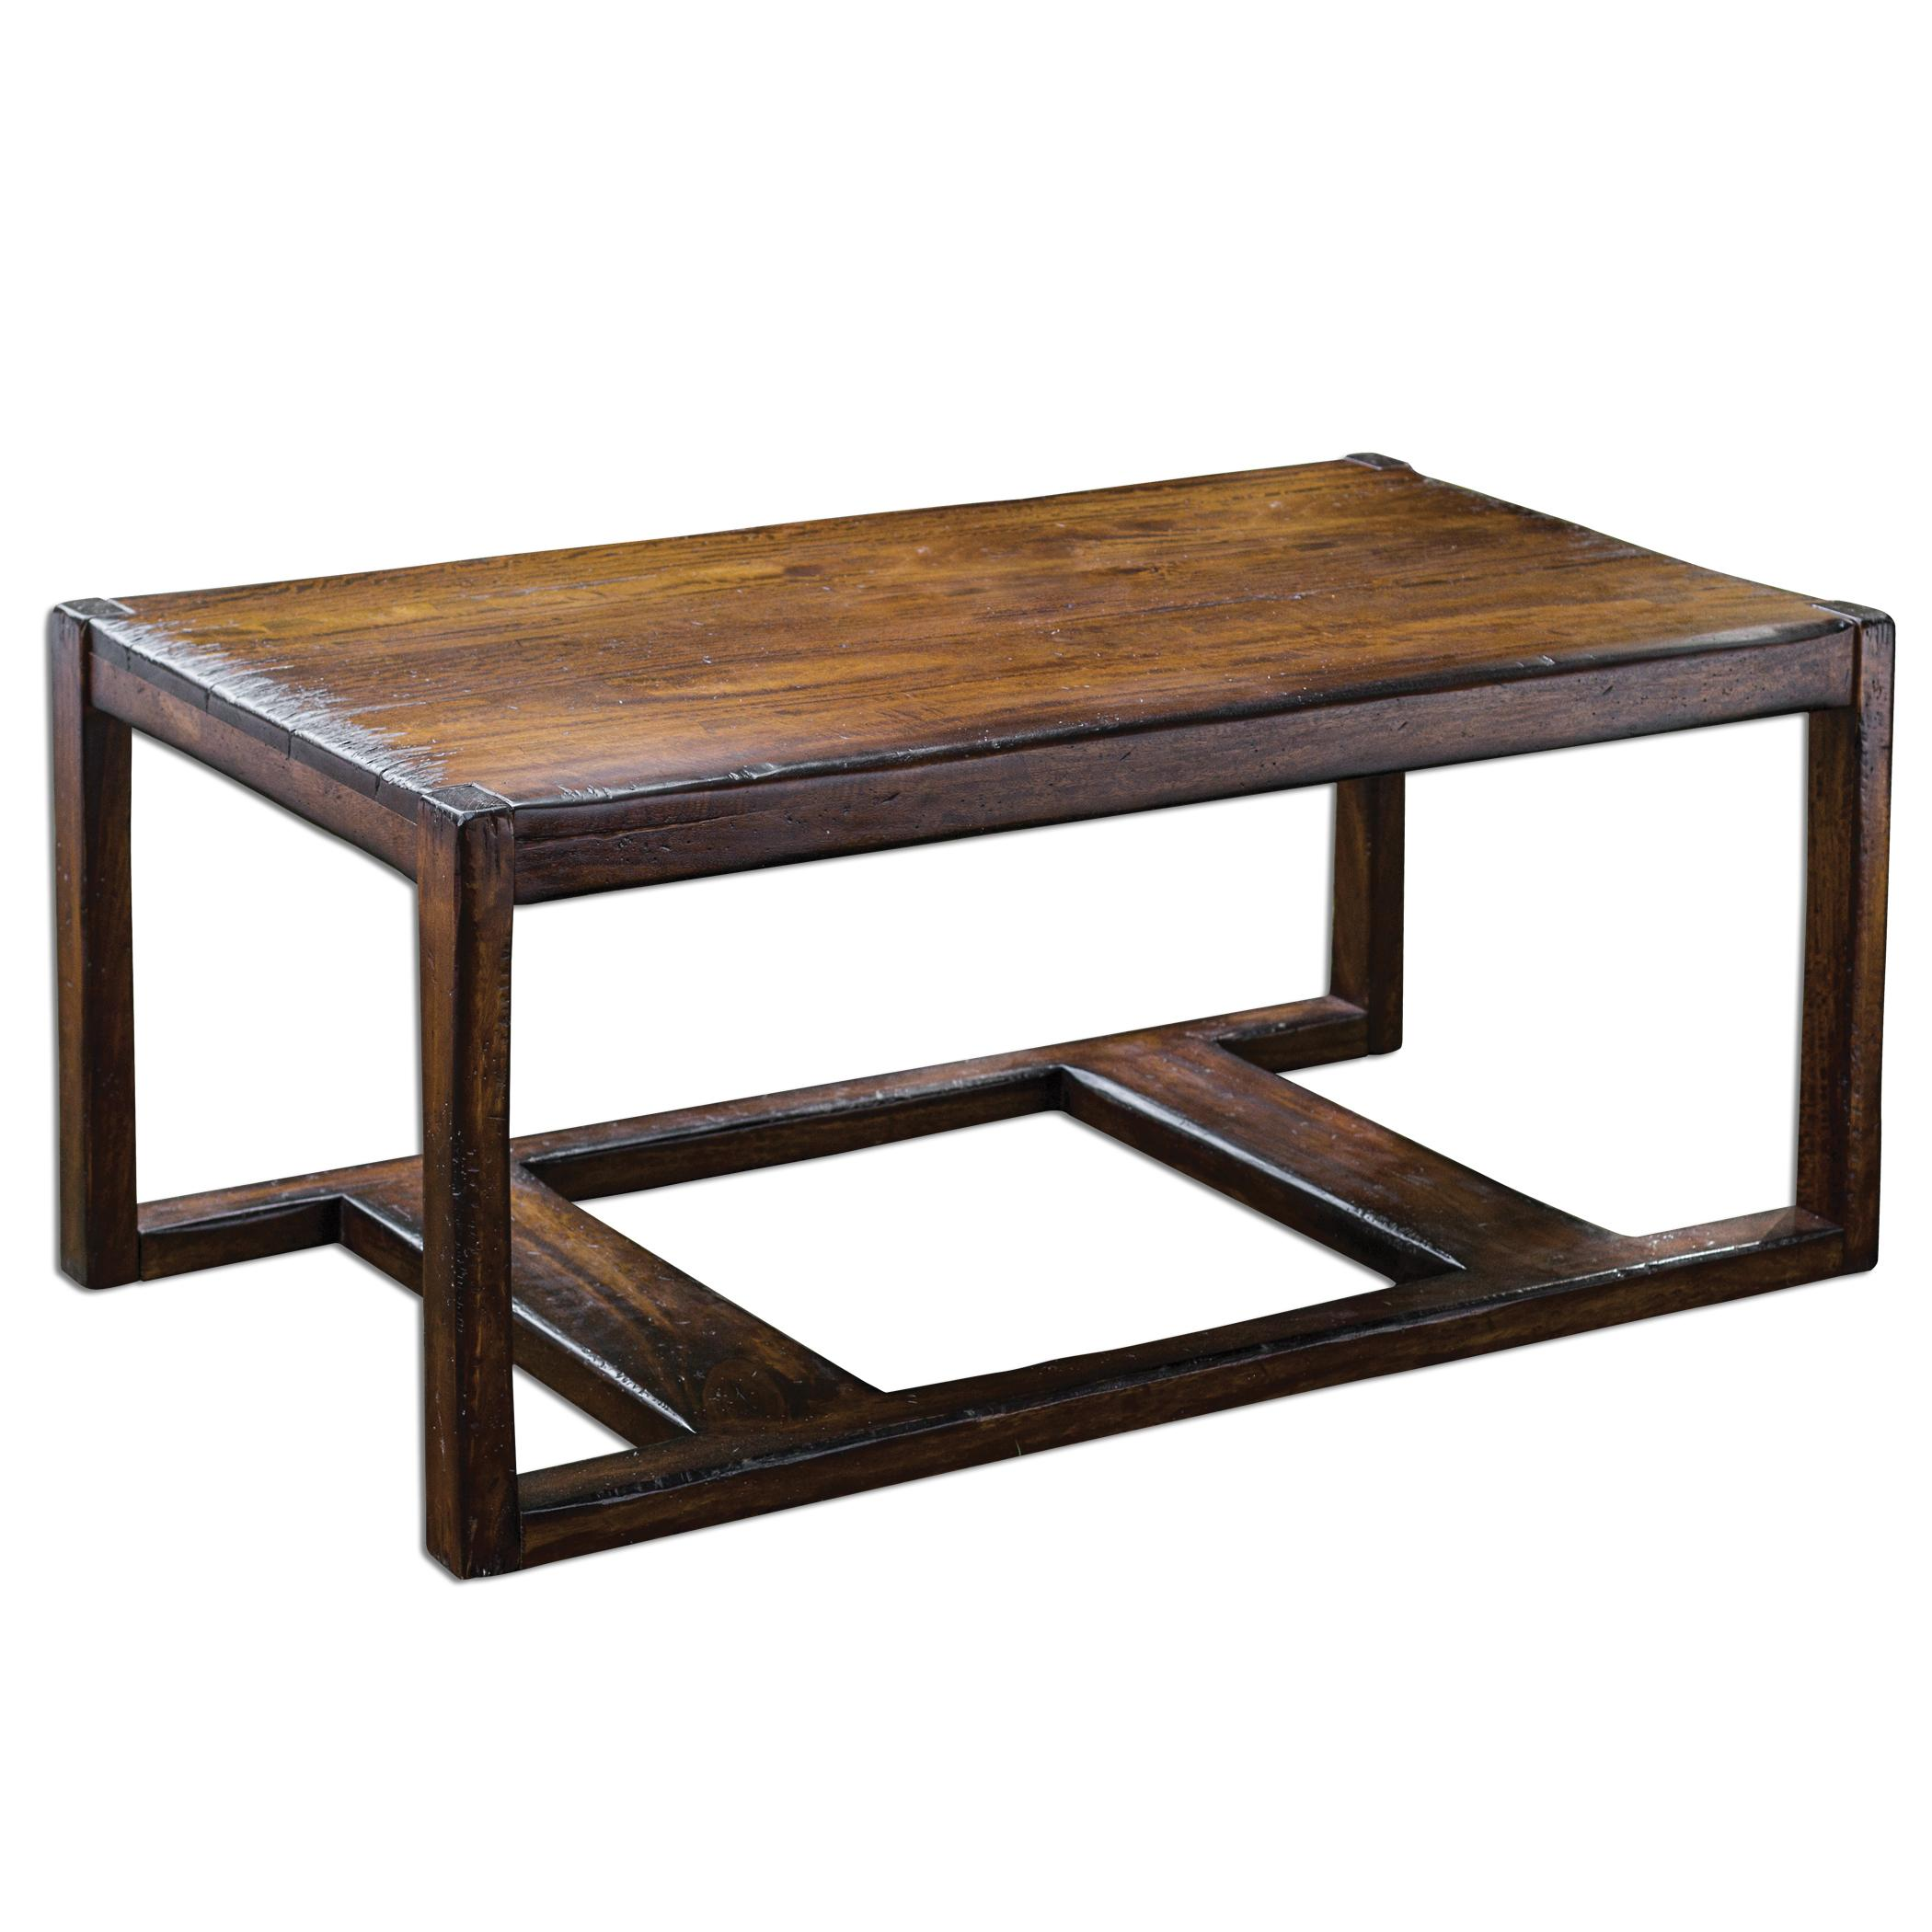 Uttermost Accent Furniture Deni Wooden Coffee Table - Item Number: 25605